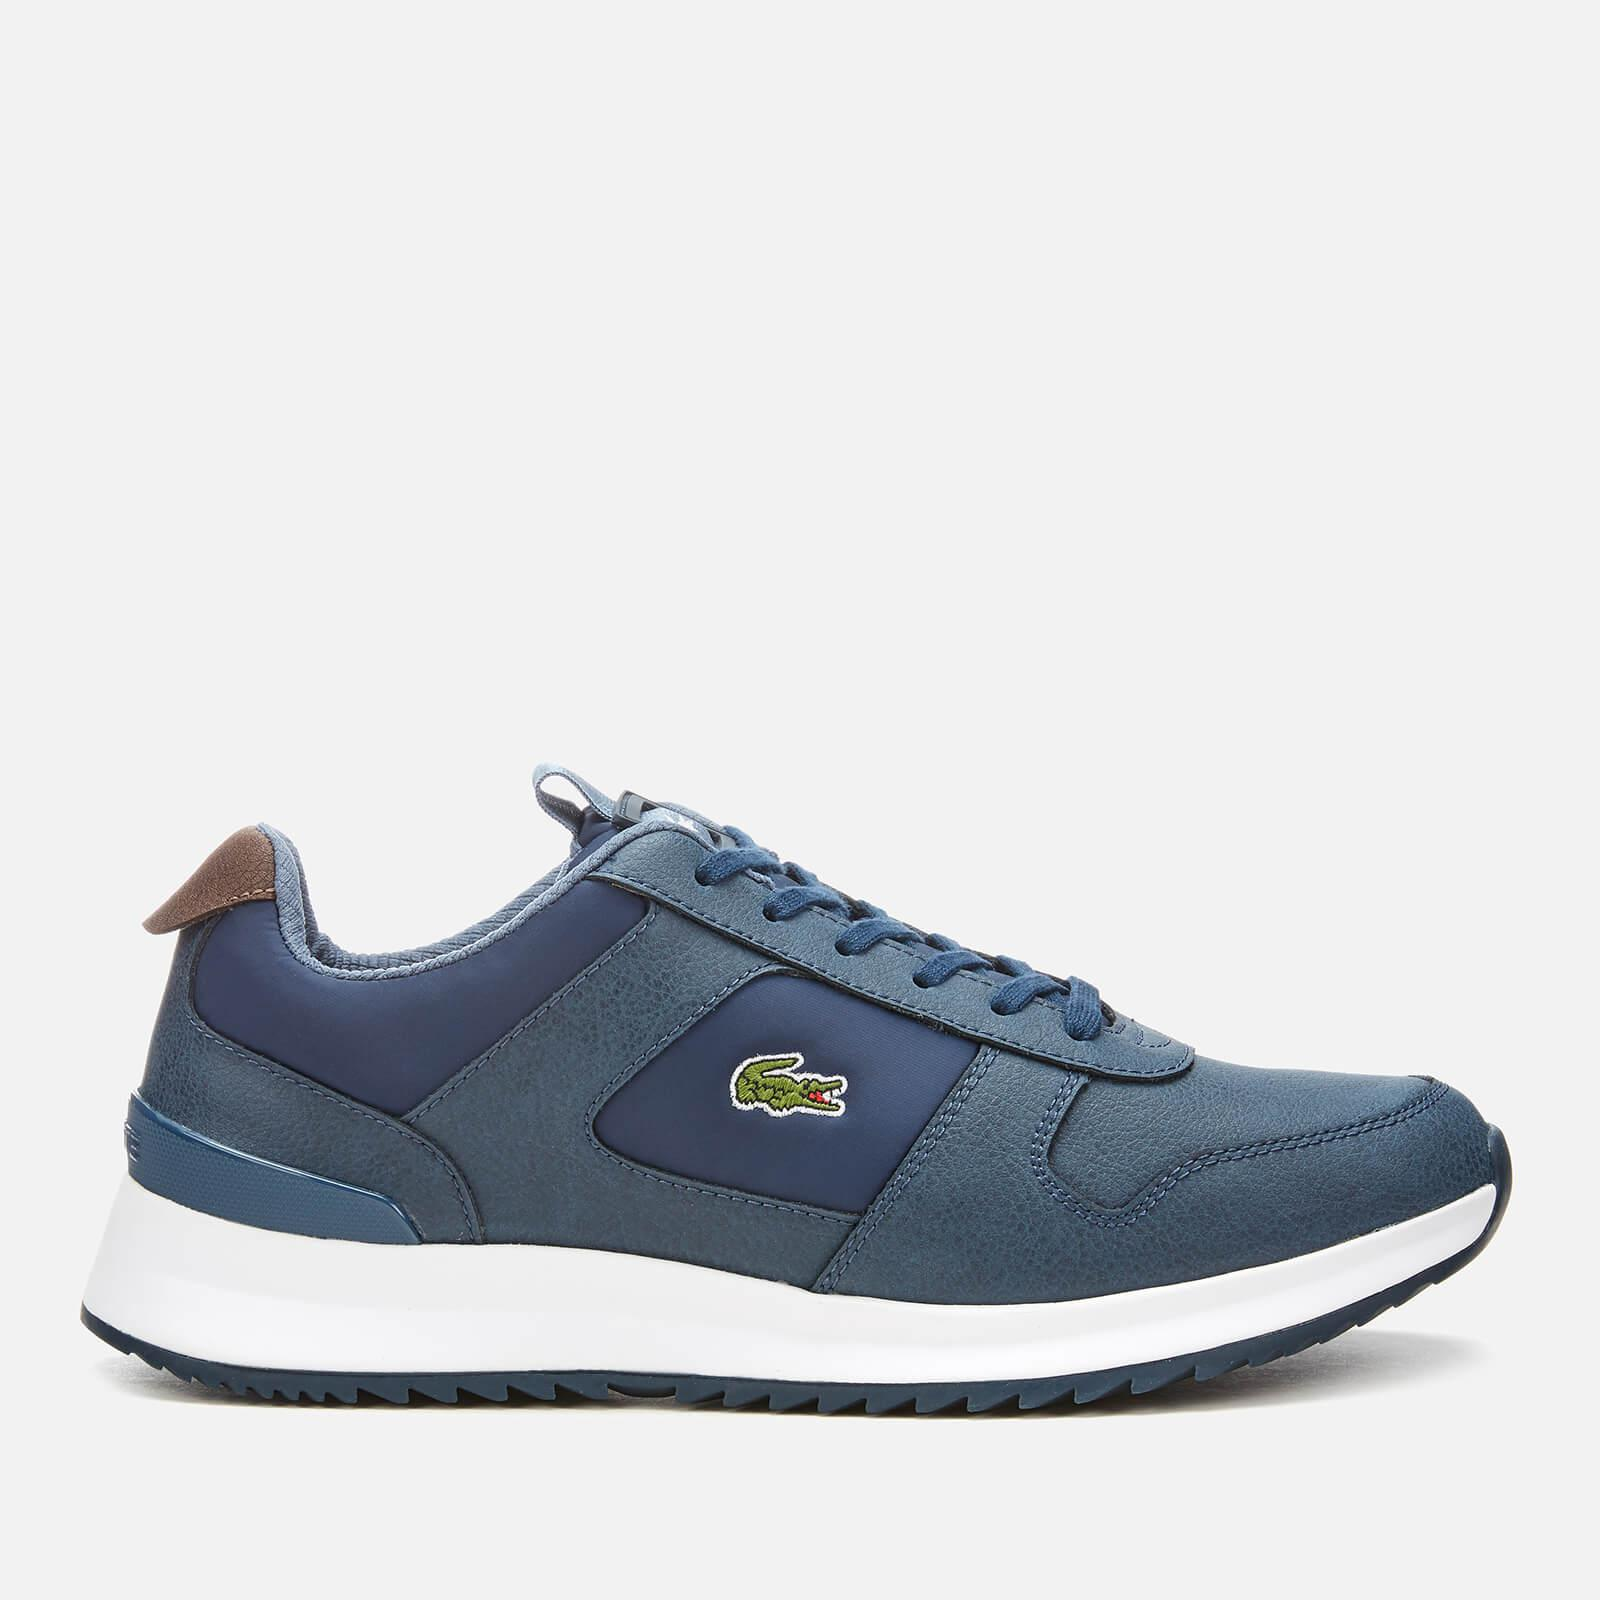 69e1cb24b3c21 Lacoste - Blue Joggeur 2.0 318 1 Textile leather Runner Style Trainers for  Men -